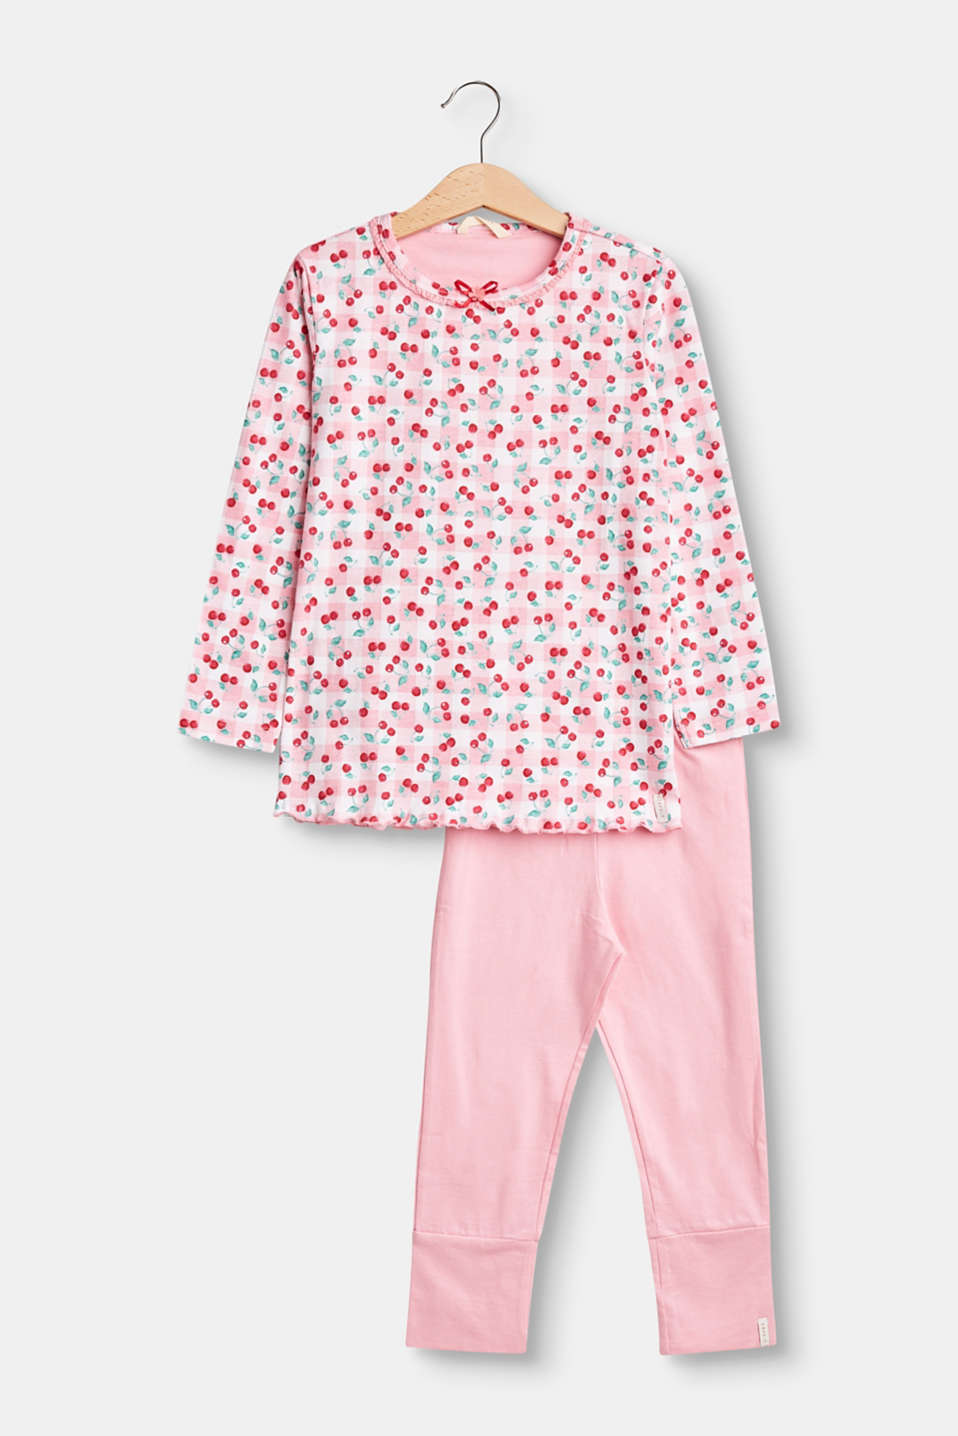 Fresh style for little girls! A cherry print adds eye-catching style to this pyjama set in 100% cotton.